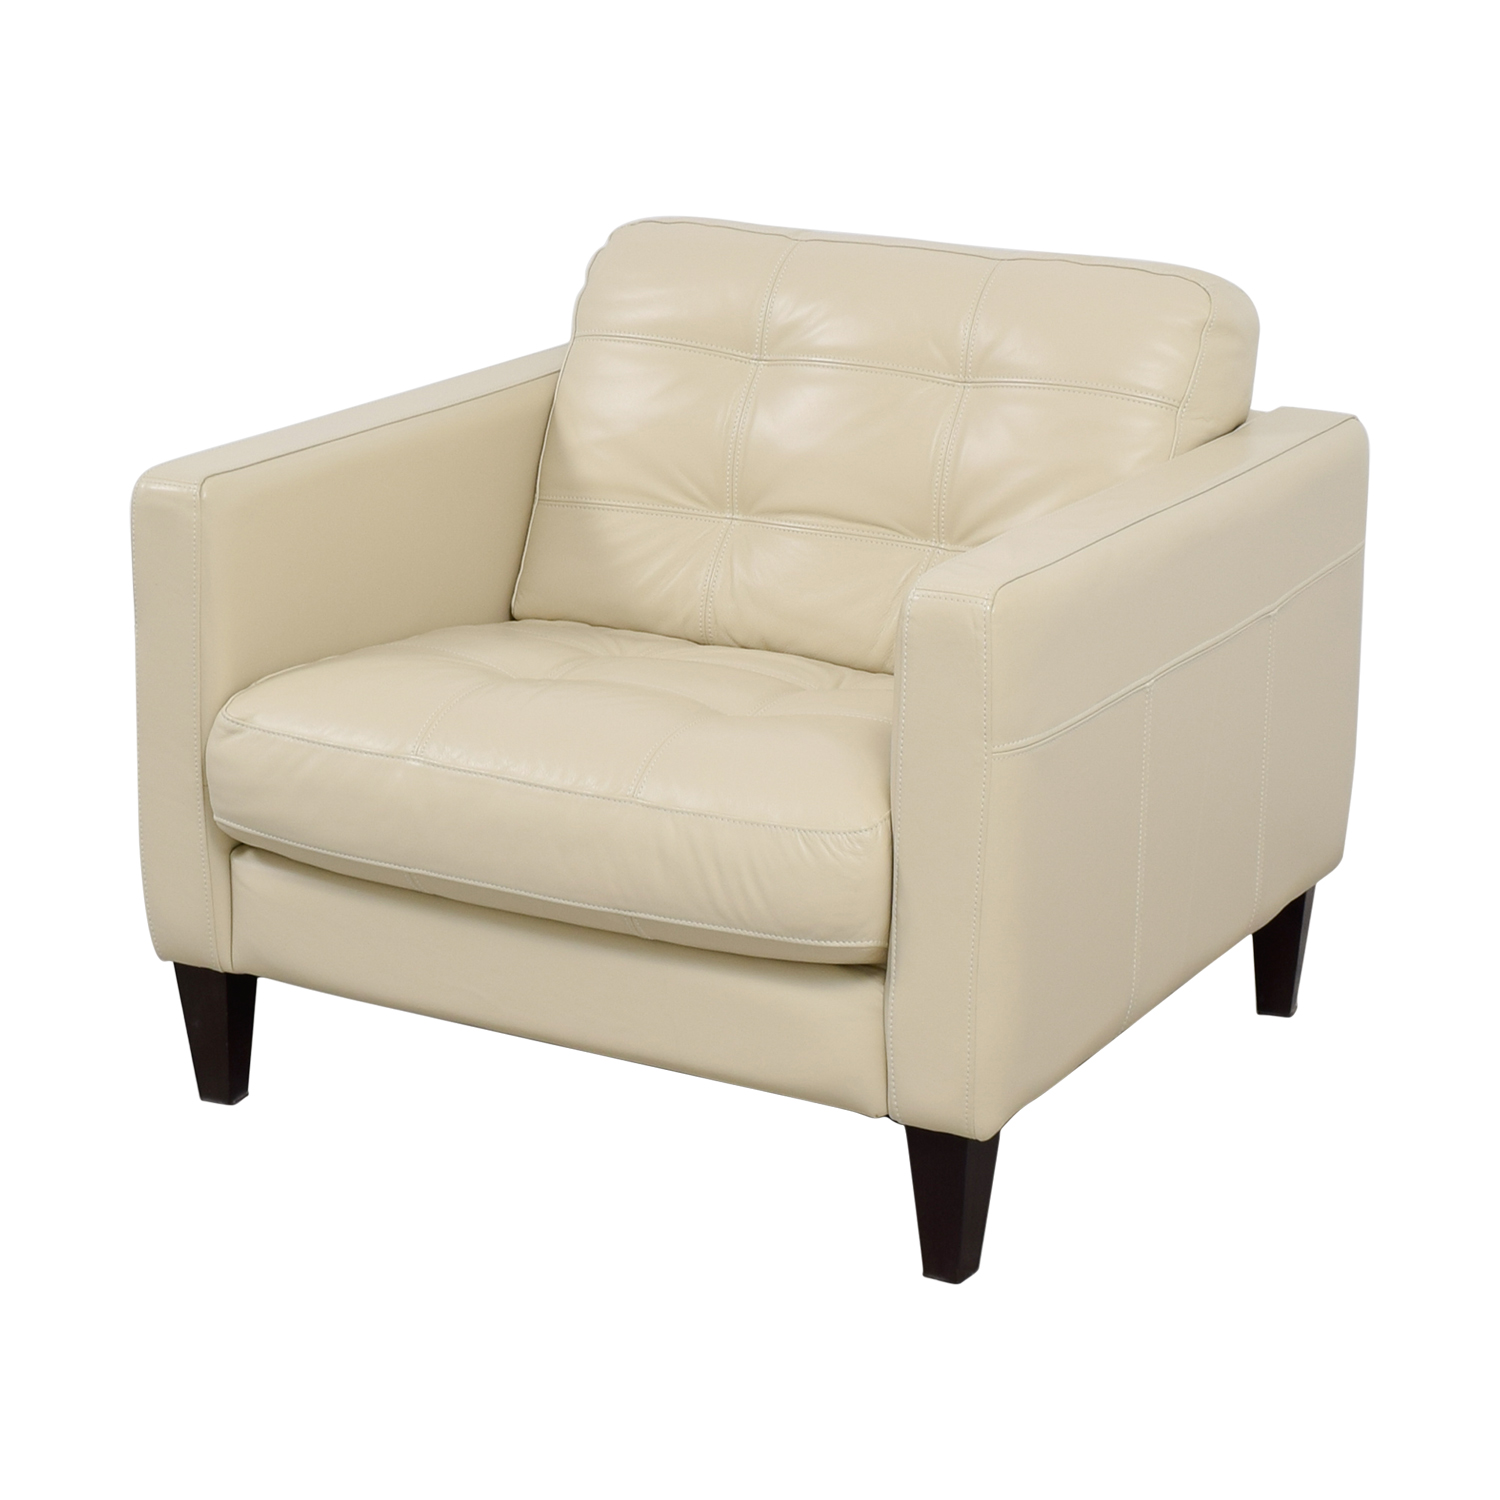 Macys Leather Chair 48 Off Macy 39s Macy 39s Milano White Leather Tufted Accent